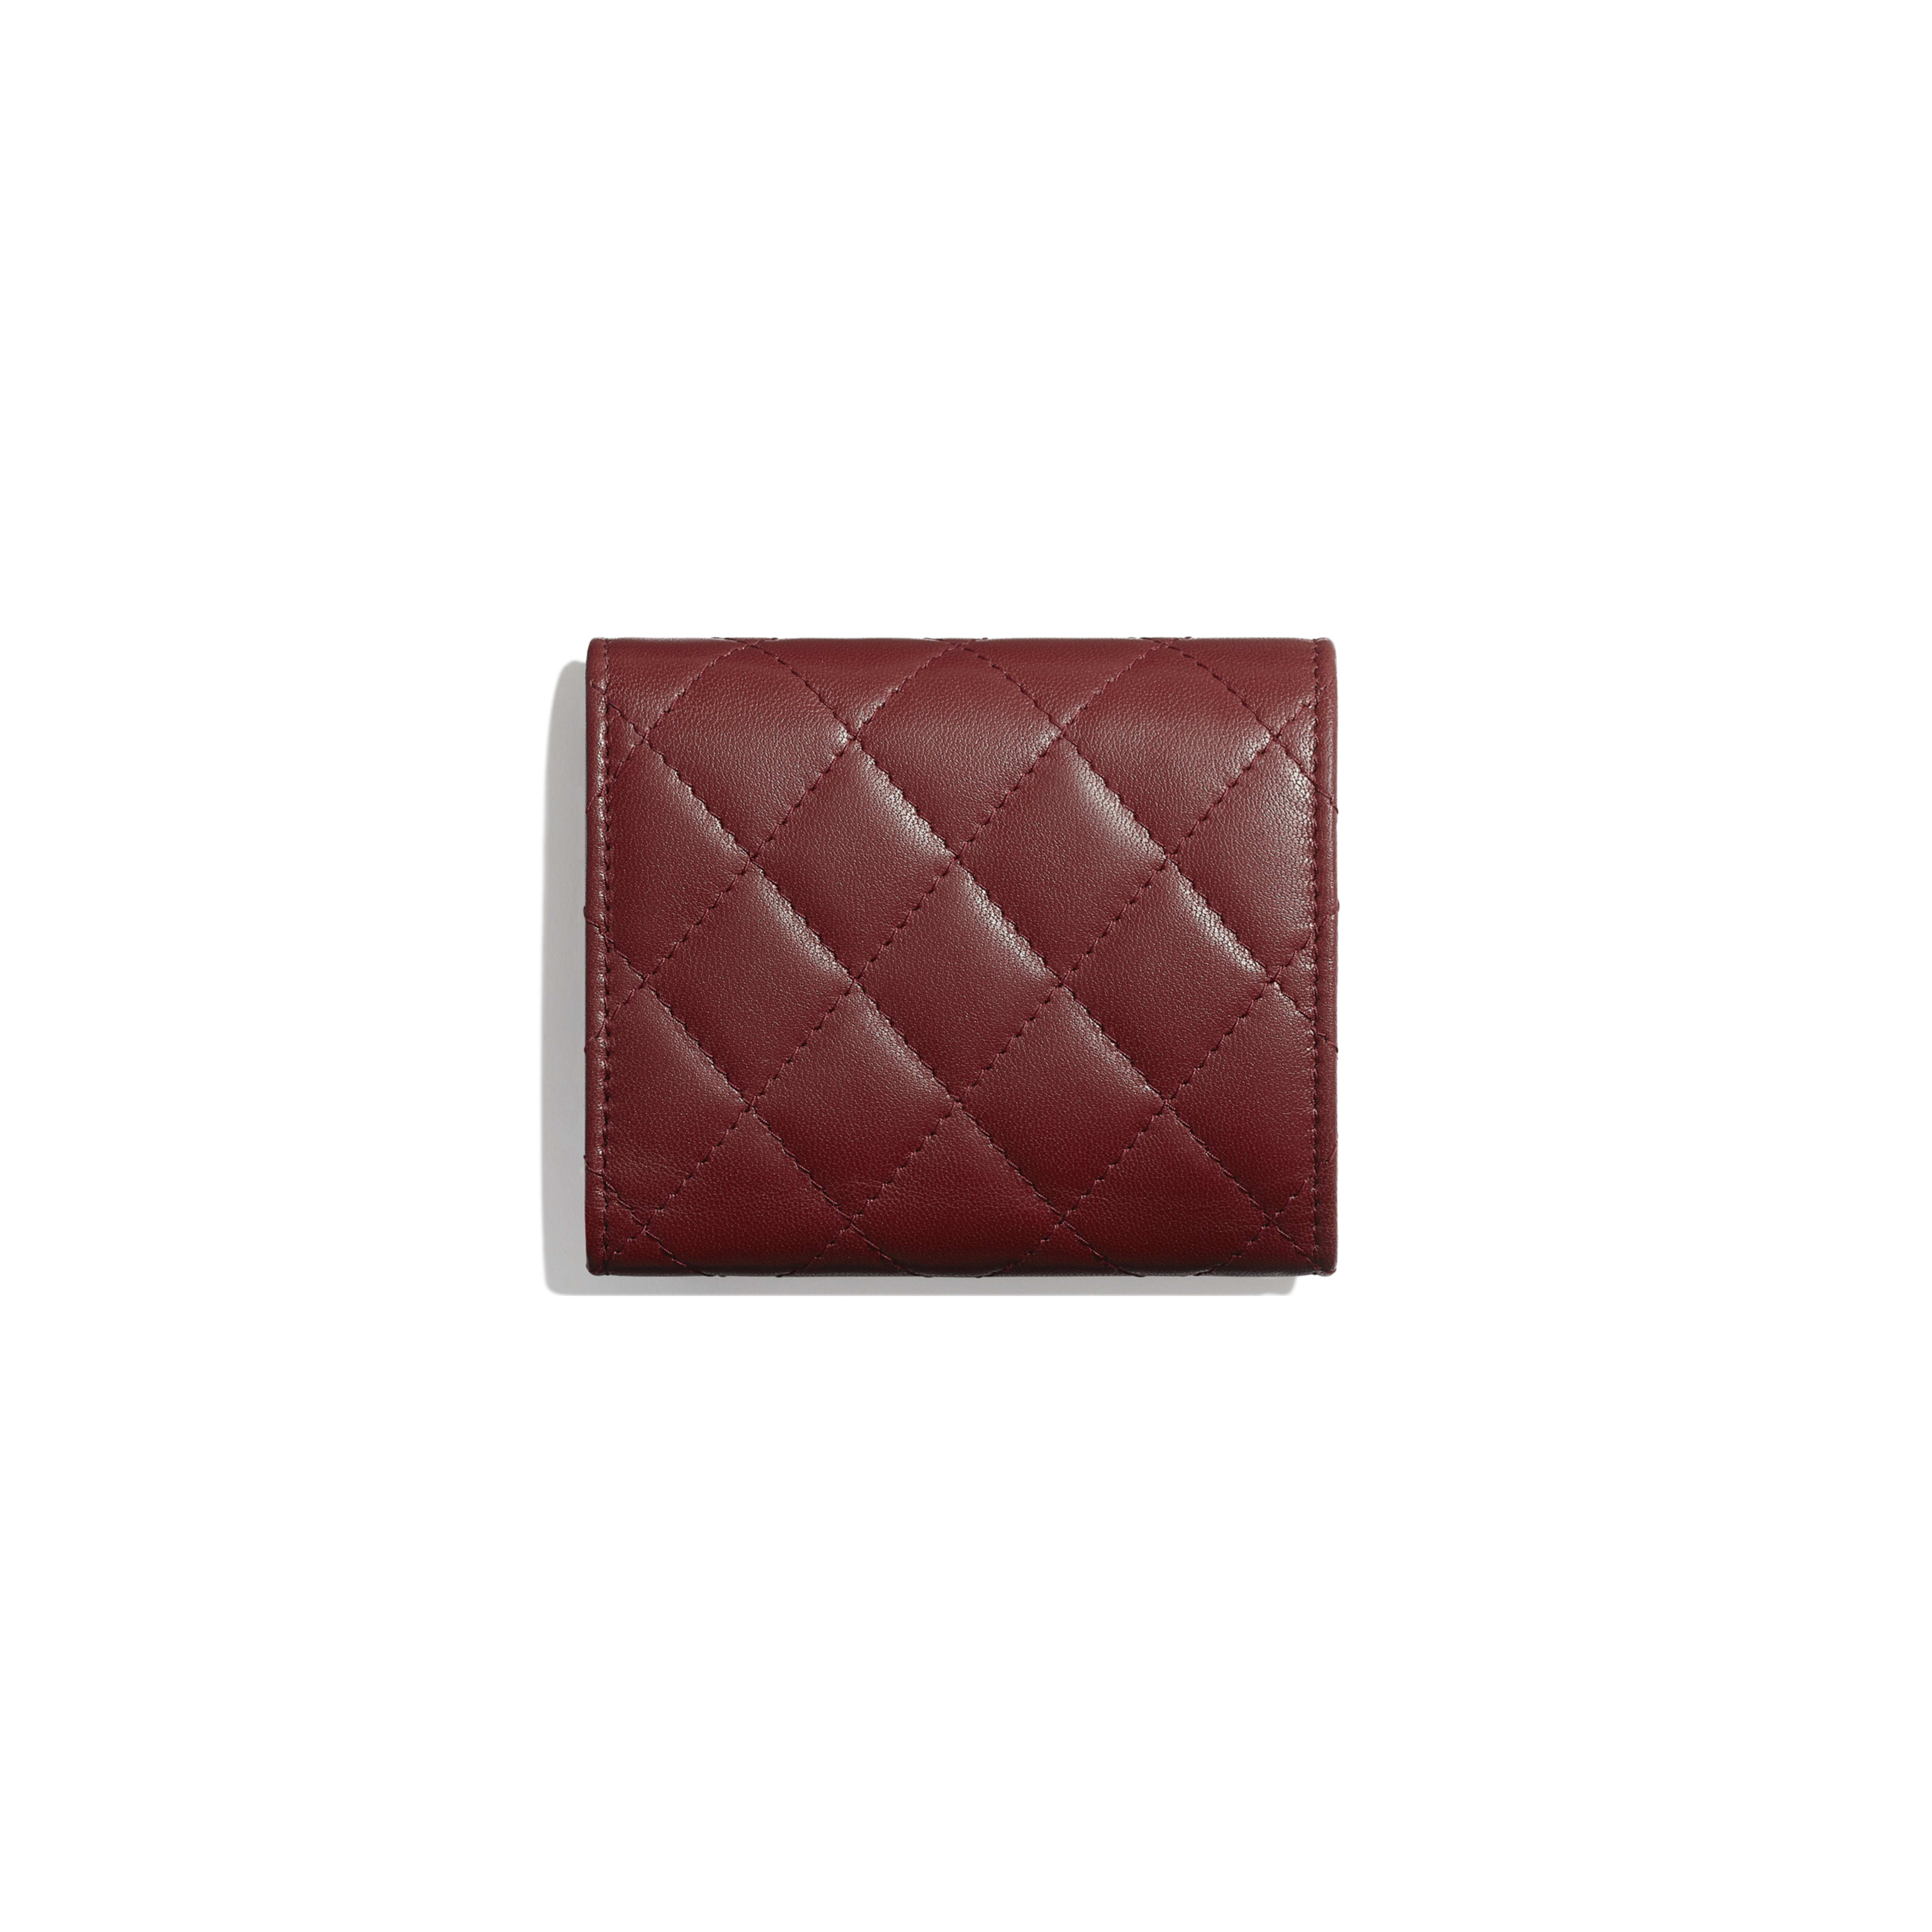 Small Flap Wallet - Burgundy - Lambskin - Alternative view - see full sized version